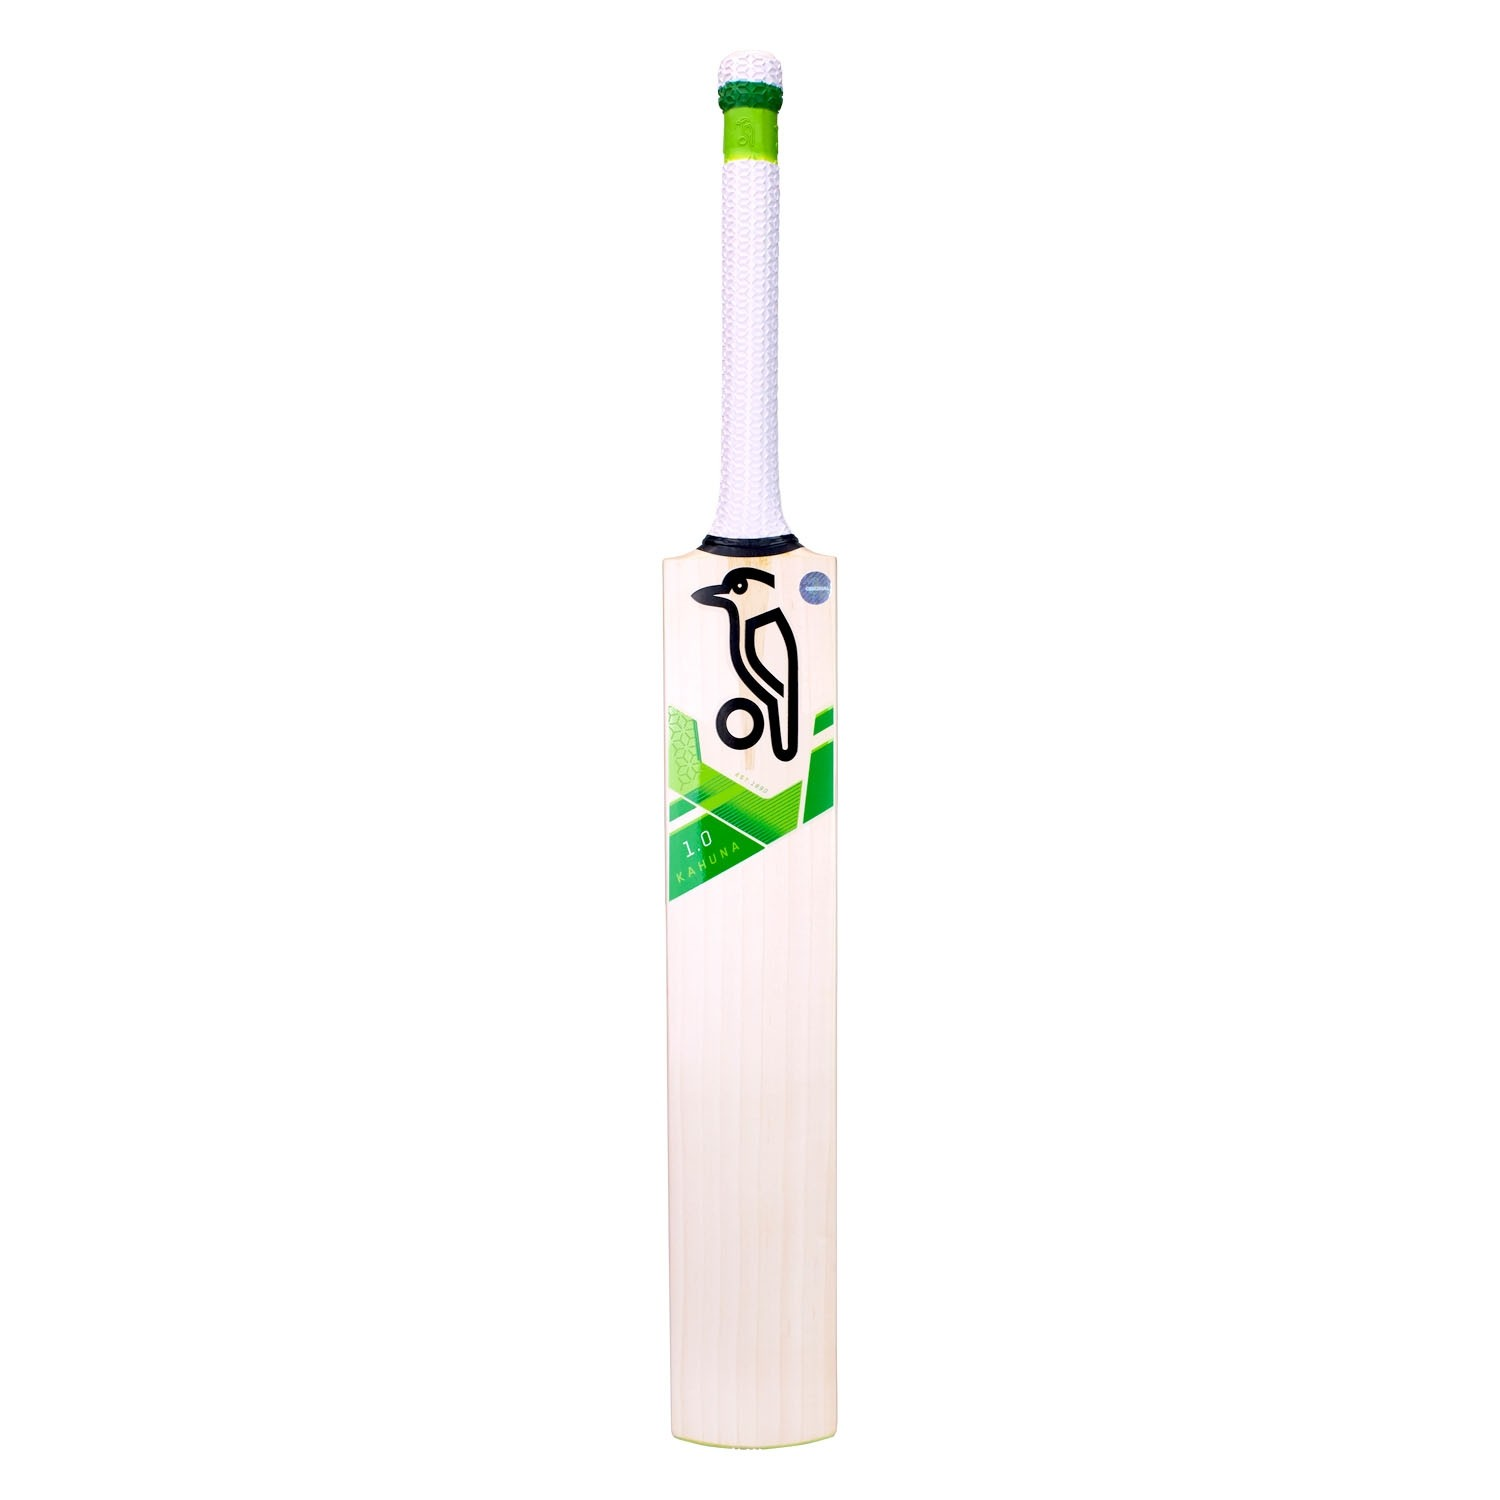 2021 Kookaburra Kahuna 1.0 Cricket Bat